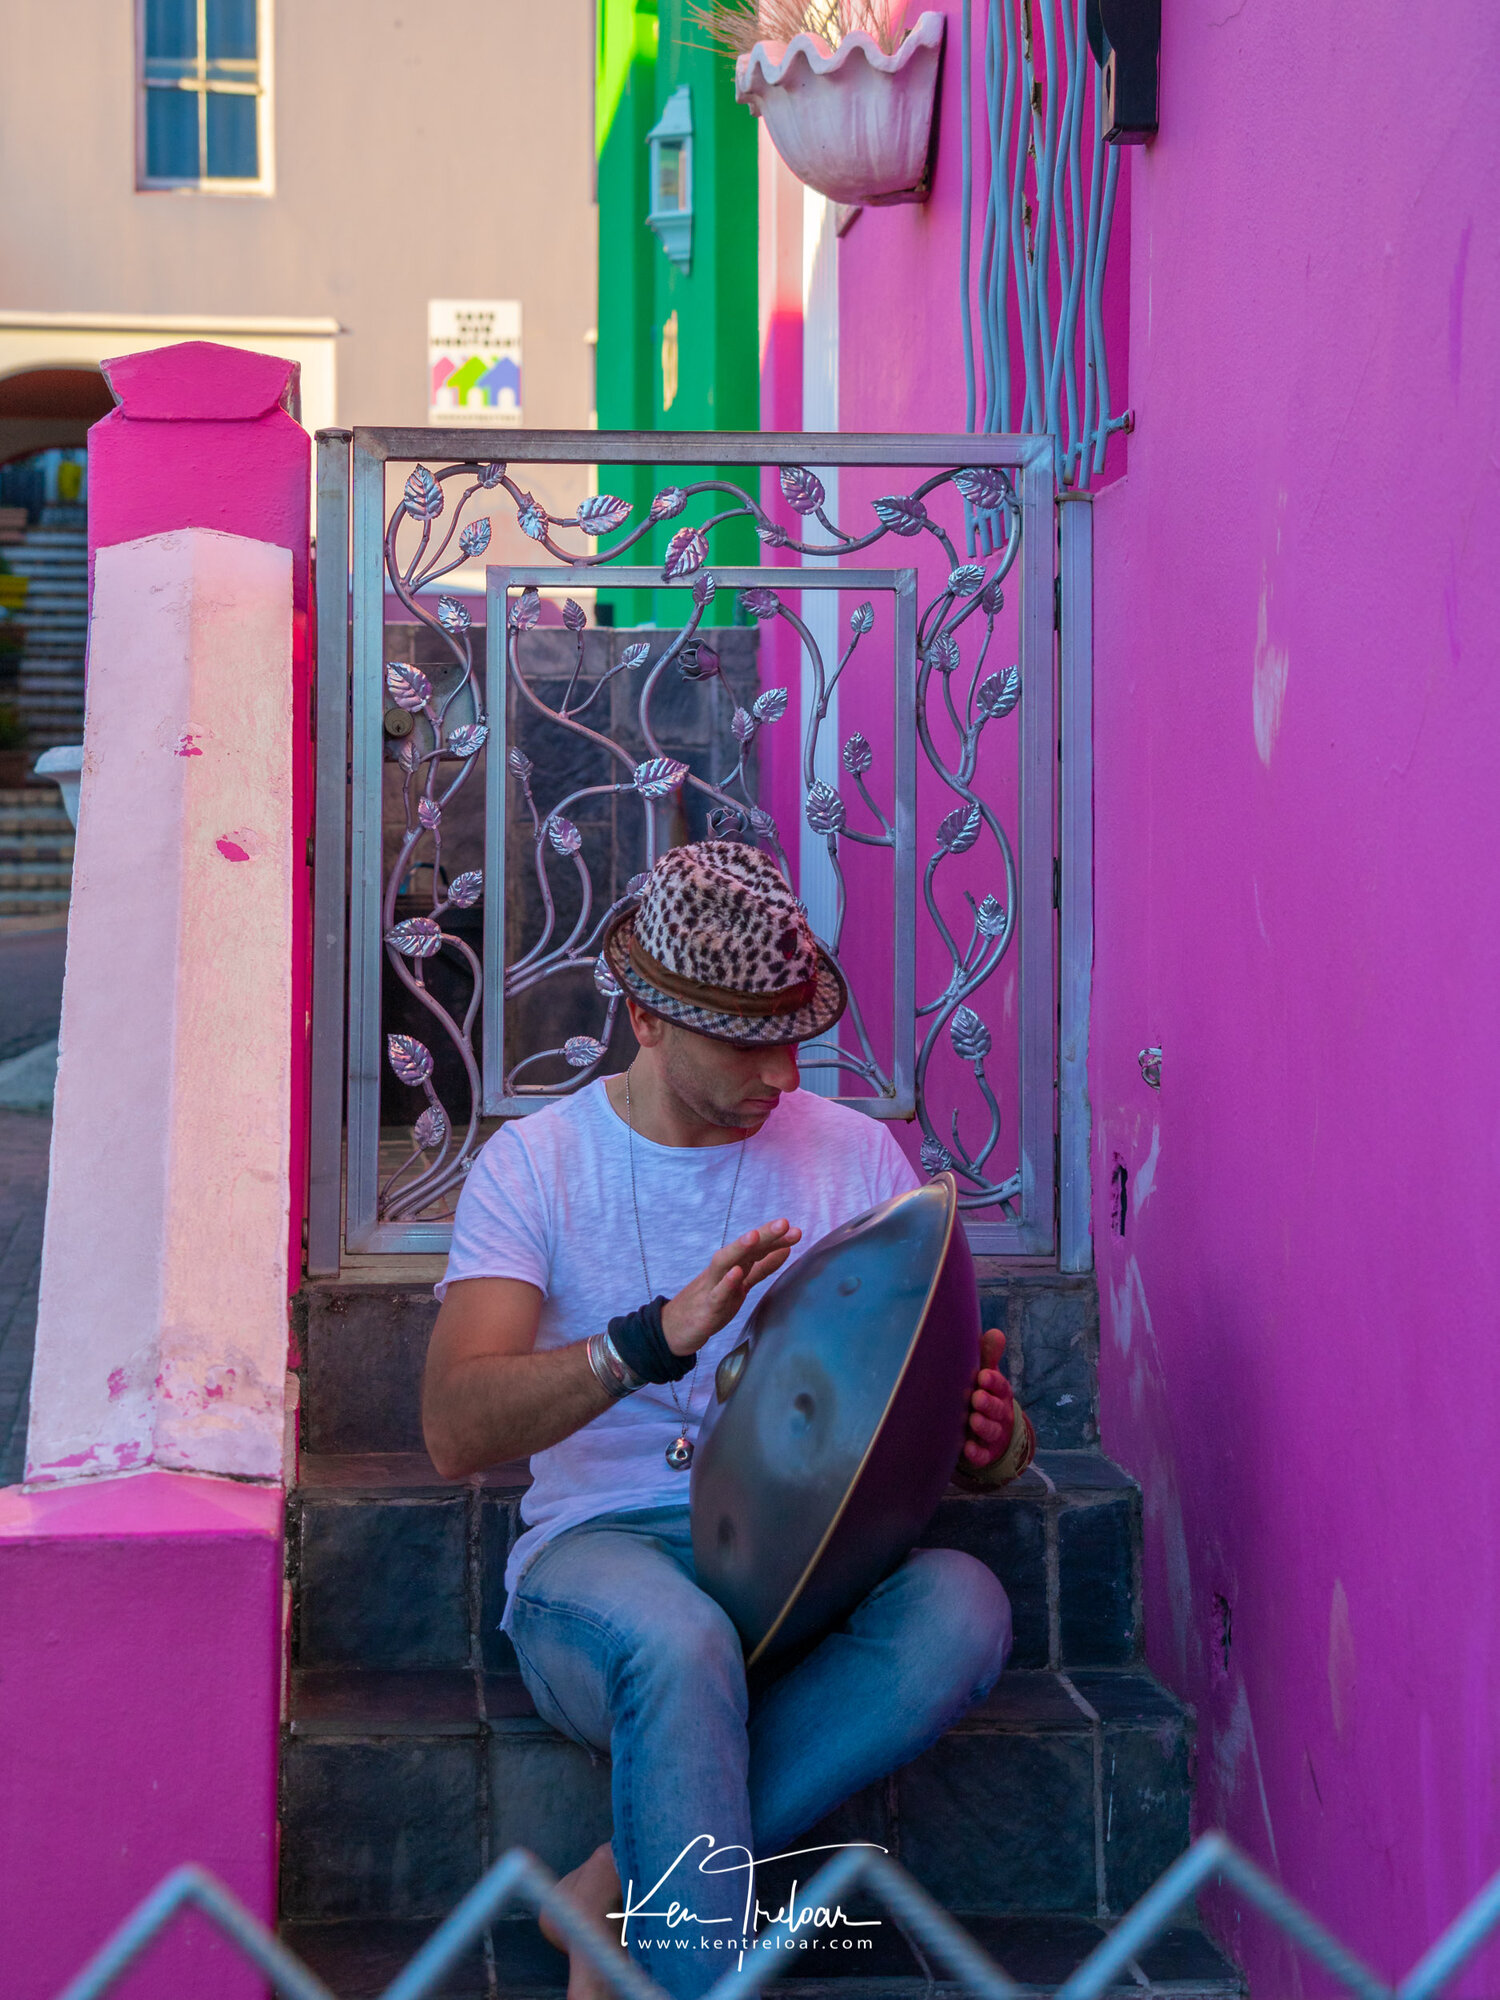 Marco Selvaggio Hang Musical Instrument - Bo-Kaap, Cape Town South Africa - Image by Ken Treloar Photography 2019-5.jpg